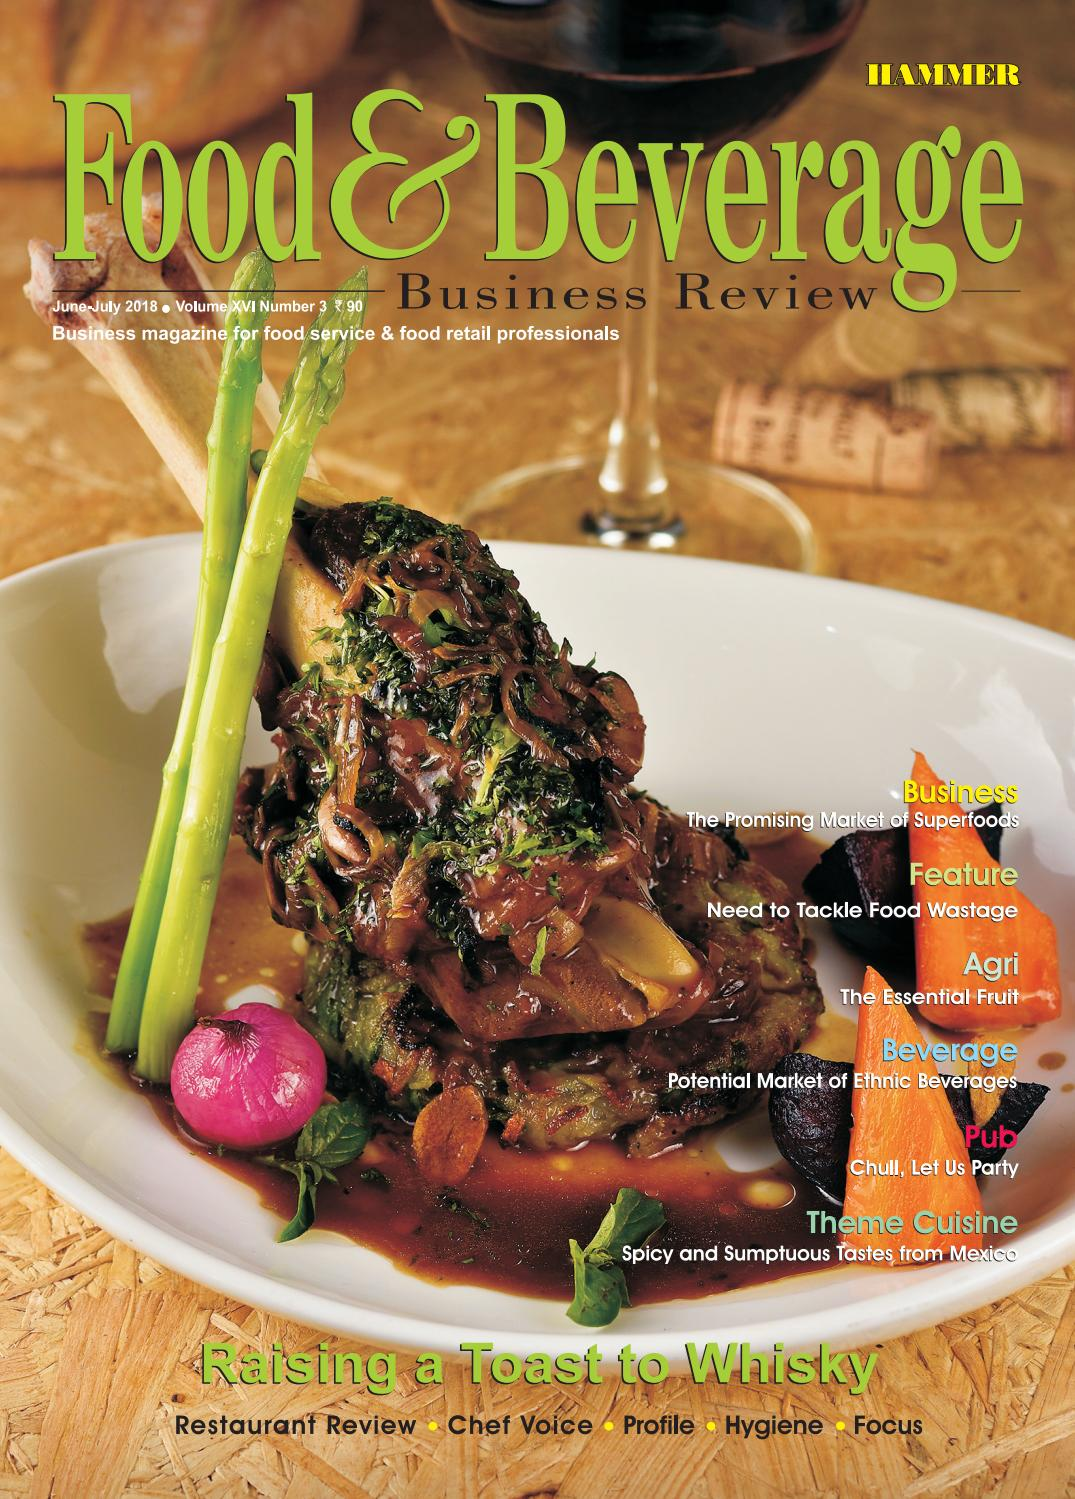 Food & Beverage Business Review ( Jun-July 2018) by Food